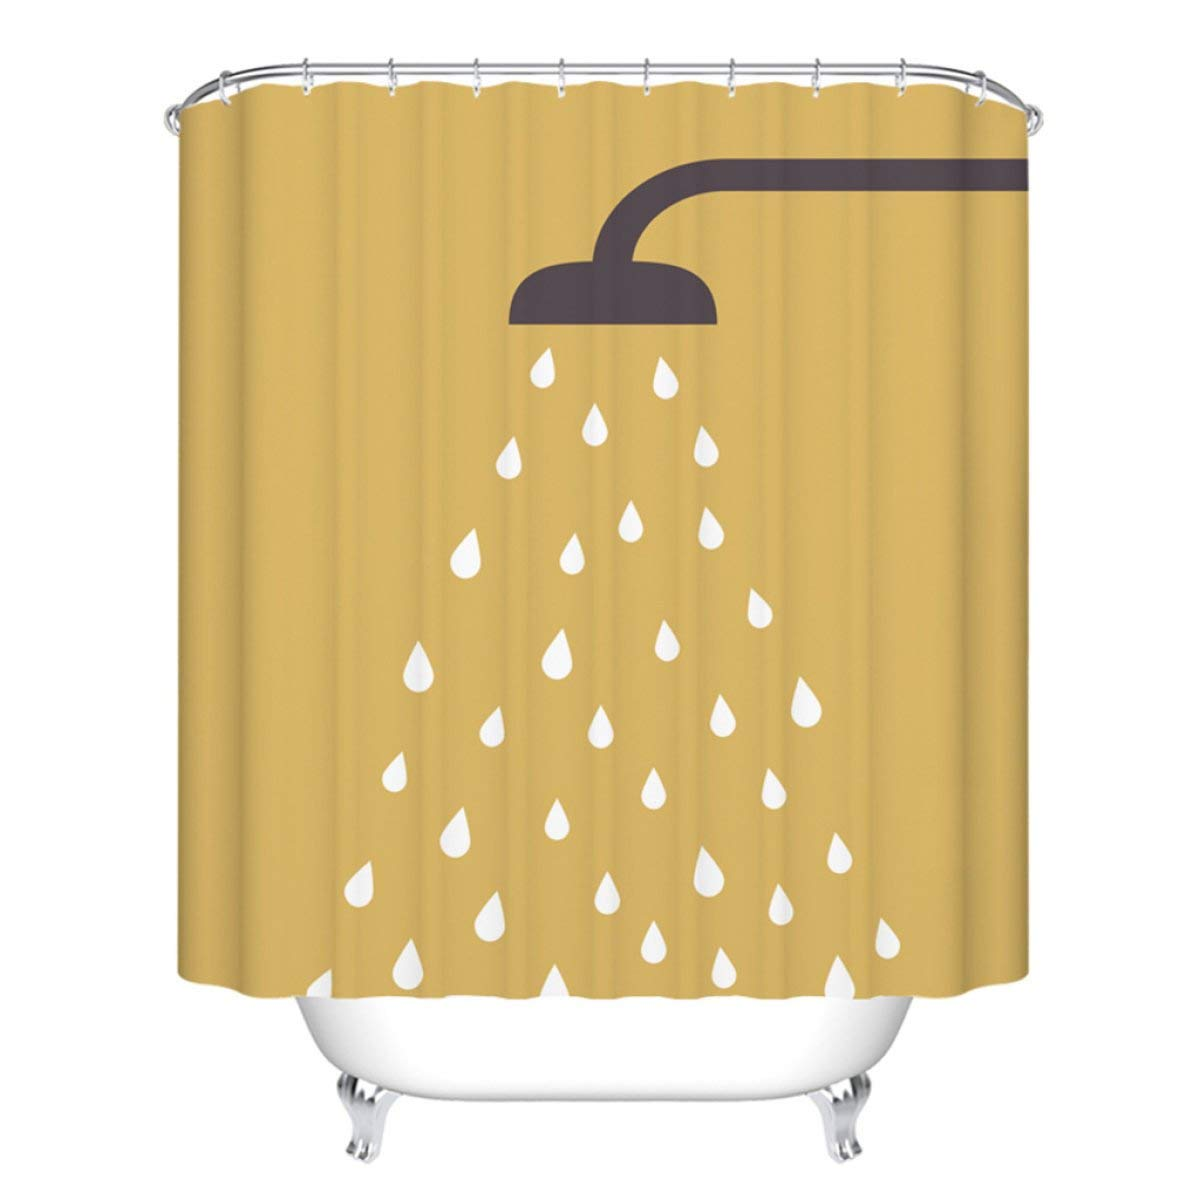 Der Thickening Opaque Polyester Baths Free Punched Shower Curtains Waterproof Non-Toxic Antibacterial Heavy-Duty Metal Buttons Bathroom Accessories (Color : B, Size : 150cm180cm)